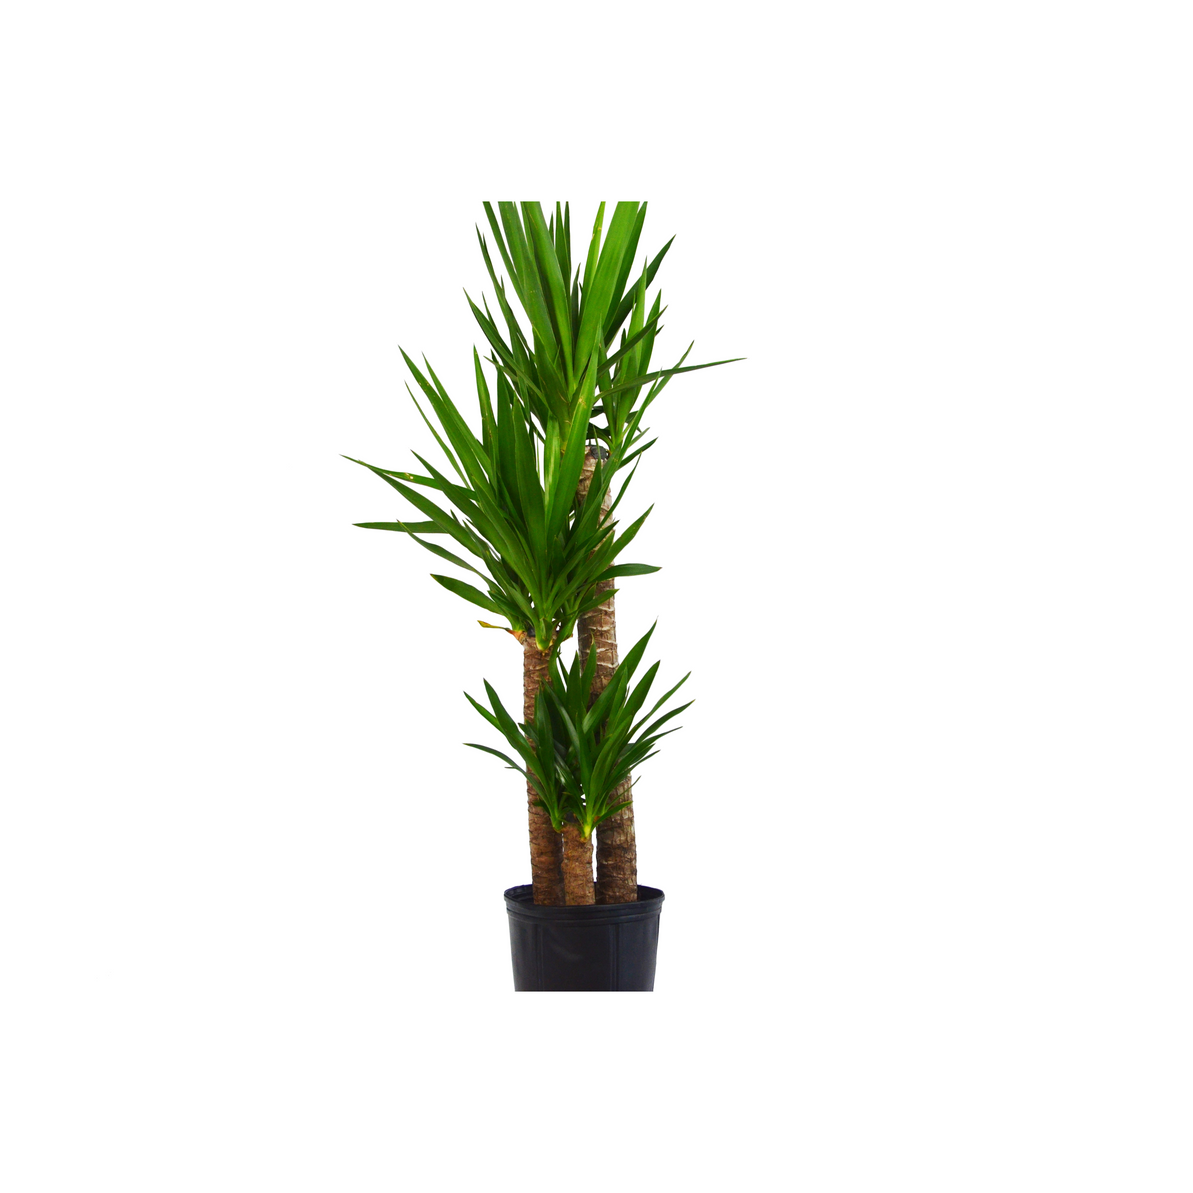 "Yuca Elephantipes 'Spineless Yucca' 3-4 ft Tall - In 10"" Pot"